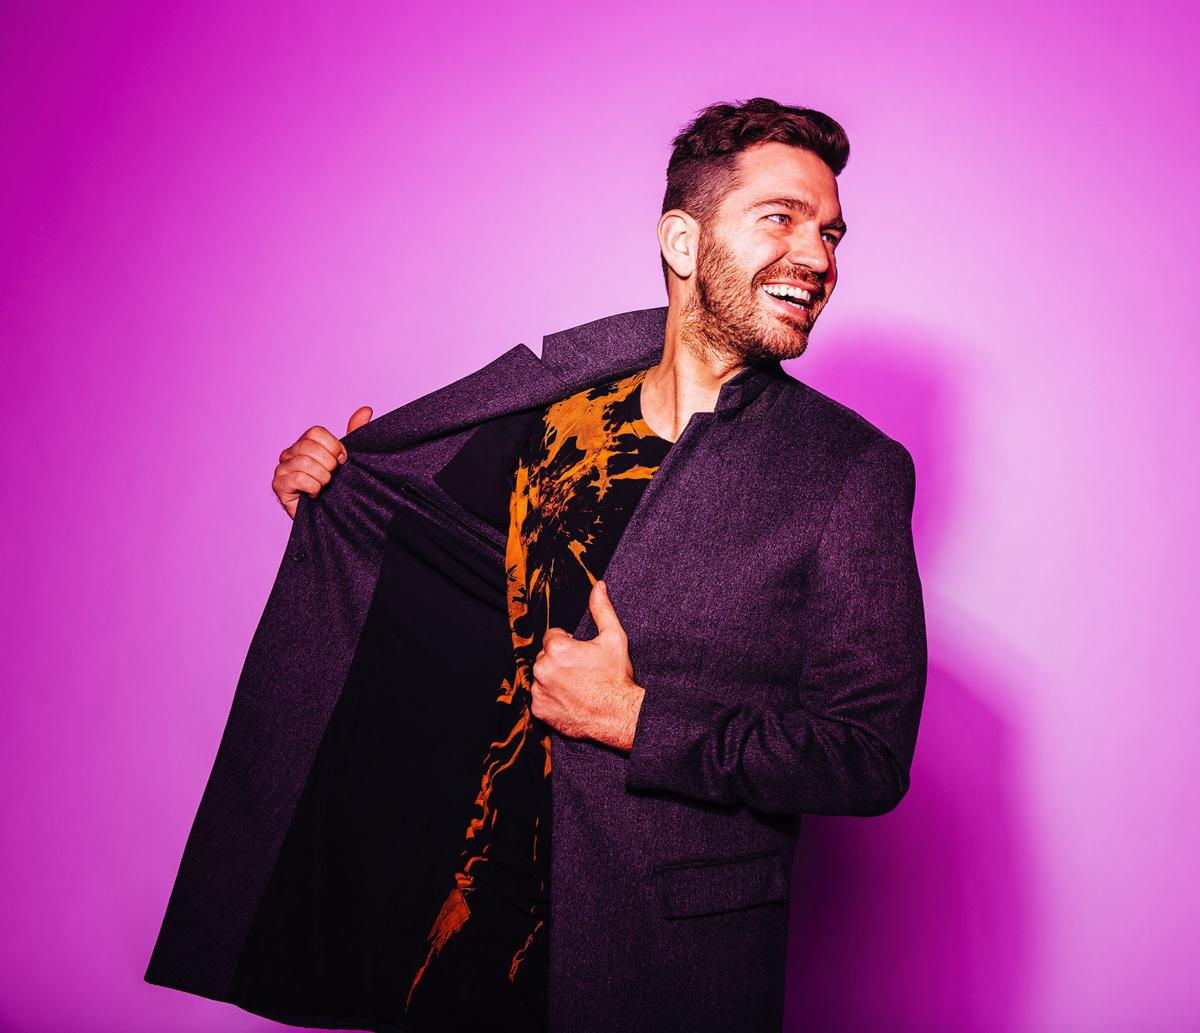 Andy Grammer to perform March 16 at Chumash Casino Resort's Samala Showroom